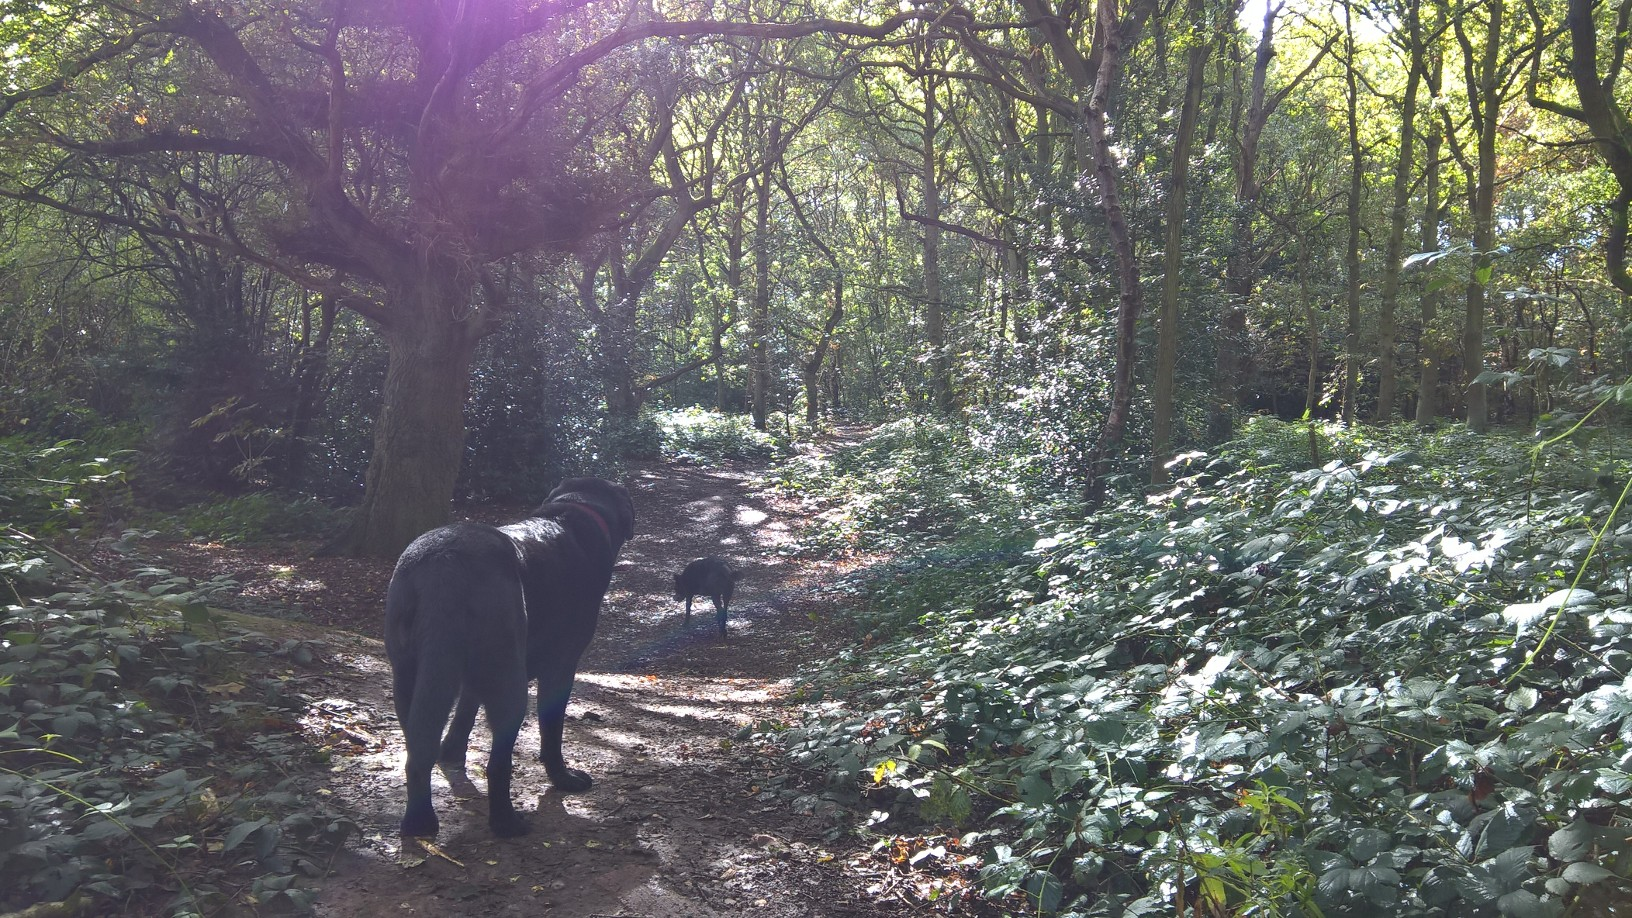 Roxy was happy to be out on a Shaws Paws walk again (Whittington Woods) after a long summer break   for video footage please visit https://www.facebook.com/Shaws-Paws-242482045761881/